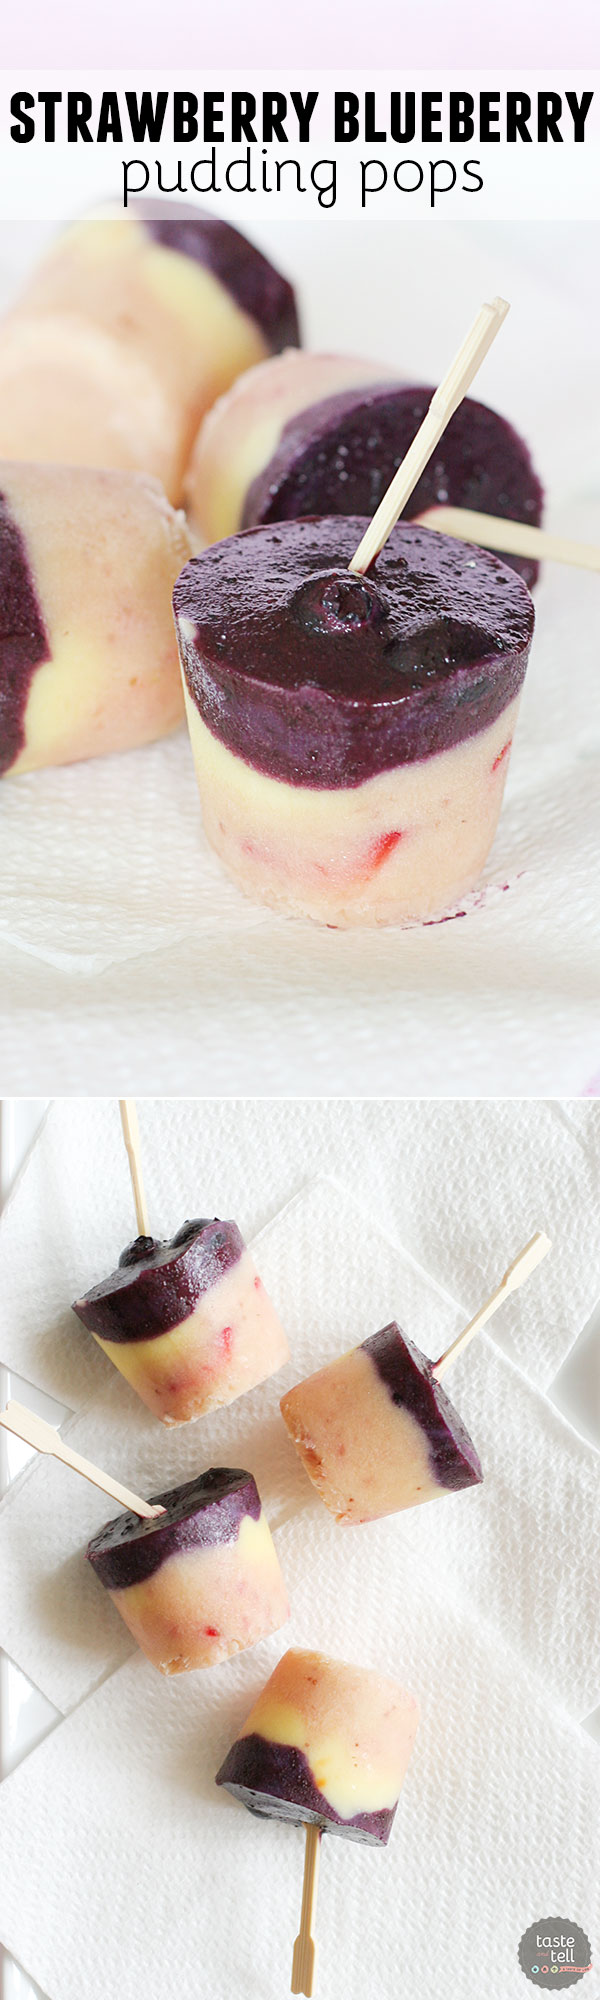 Yes – you can easily make frozen pudding pops at home! These pudding pops are infused with fresh strawberries and blueberries.